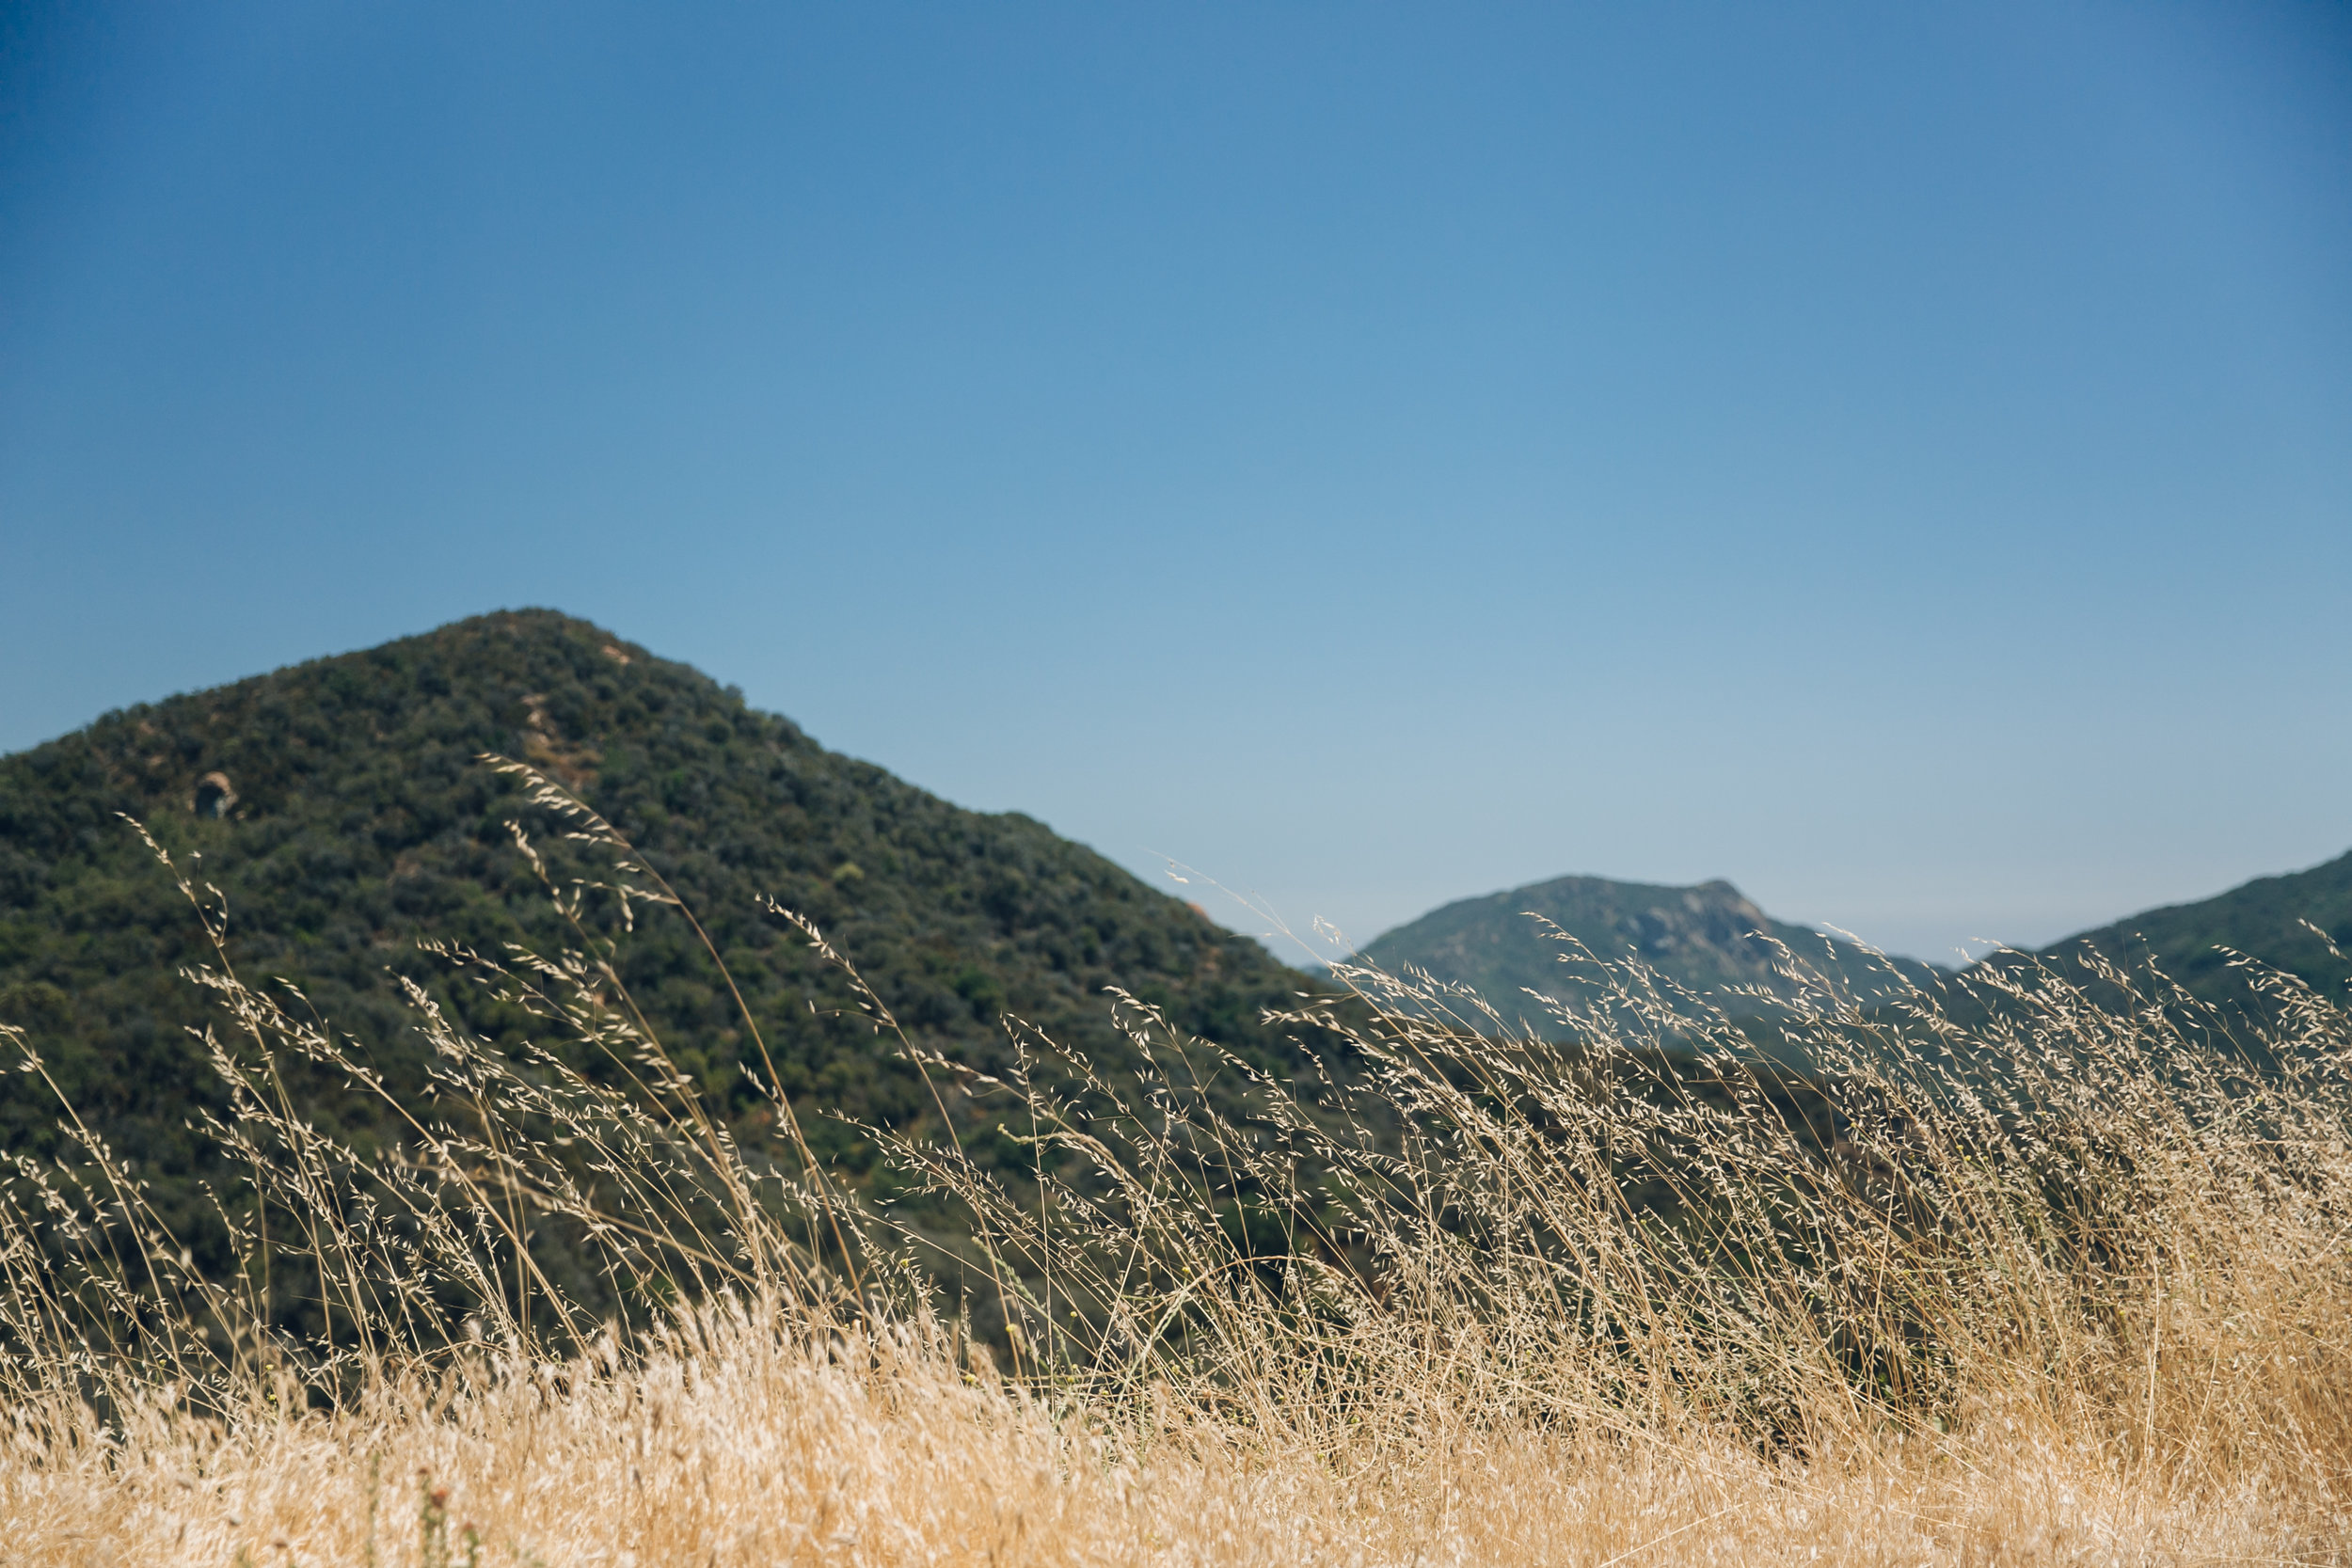 Grasses in Californian wine country - somewhere near Santa Barbara.